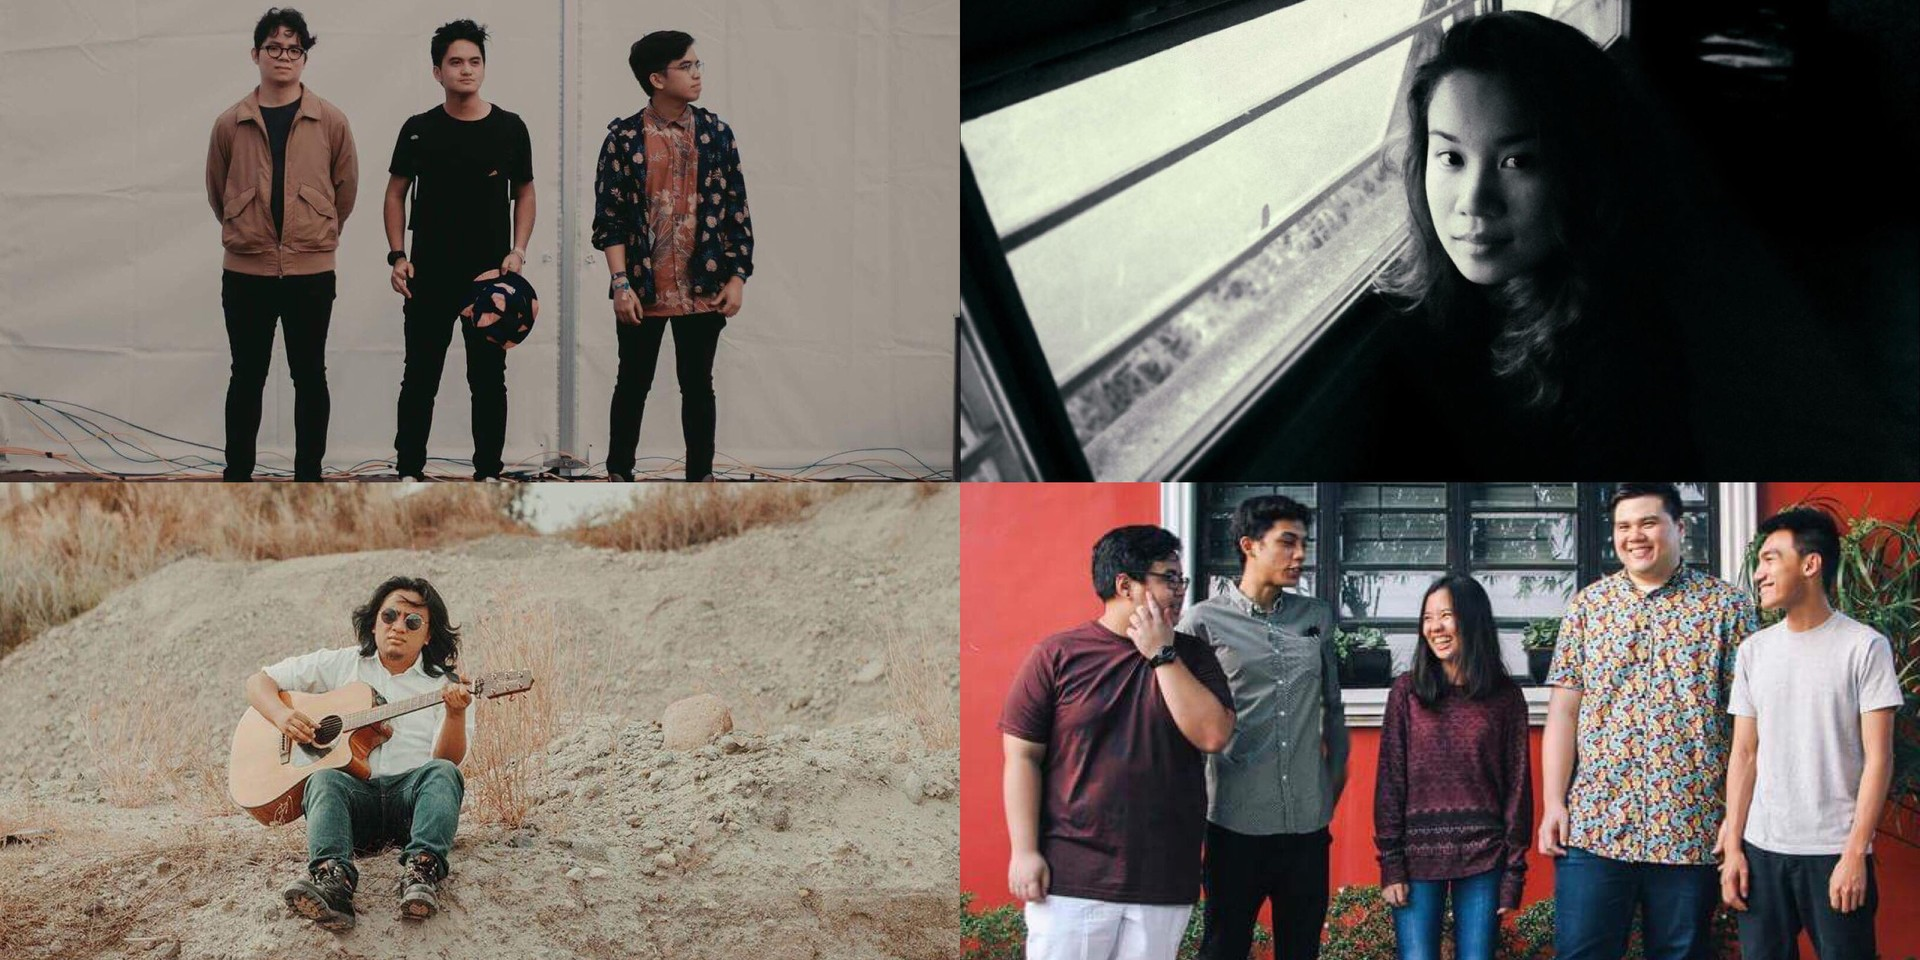 Tom's Story, Shirebound and Busking, and more lined up for second edition of Bandwagon Nights